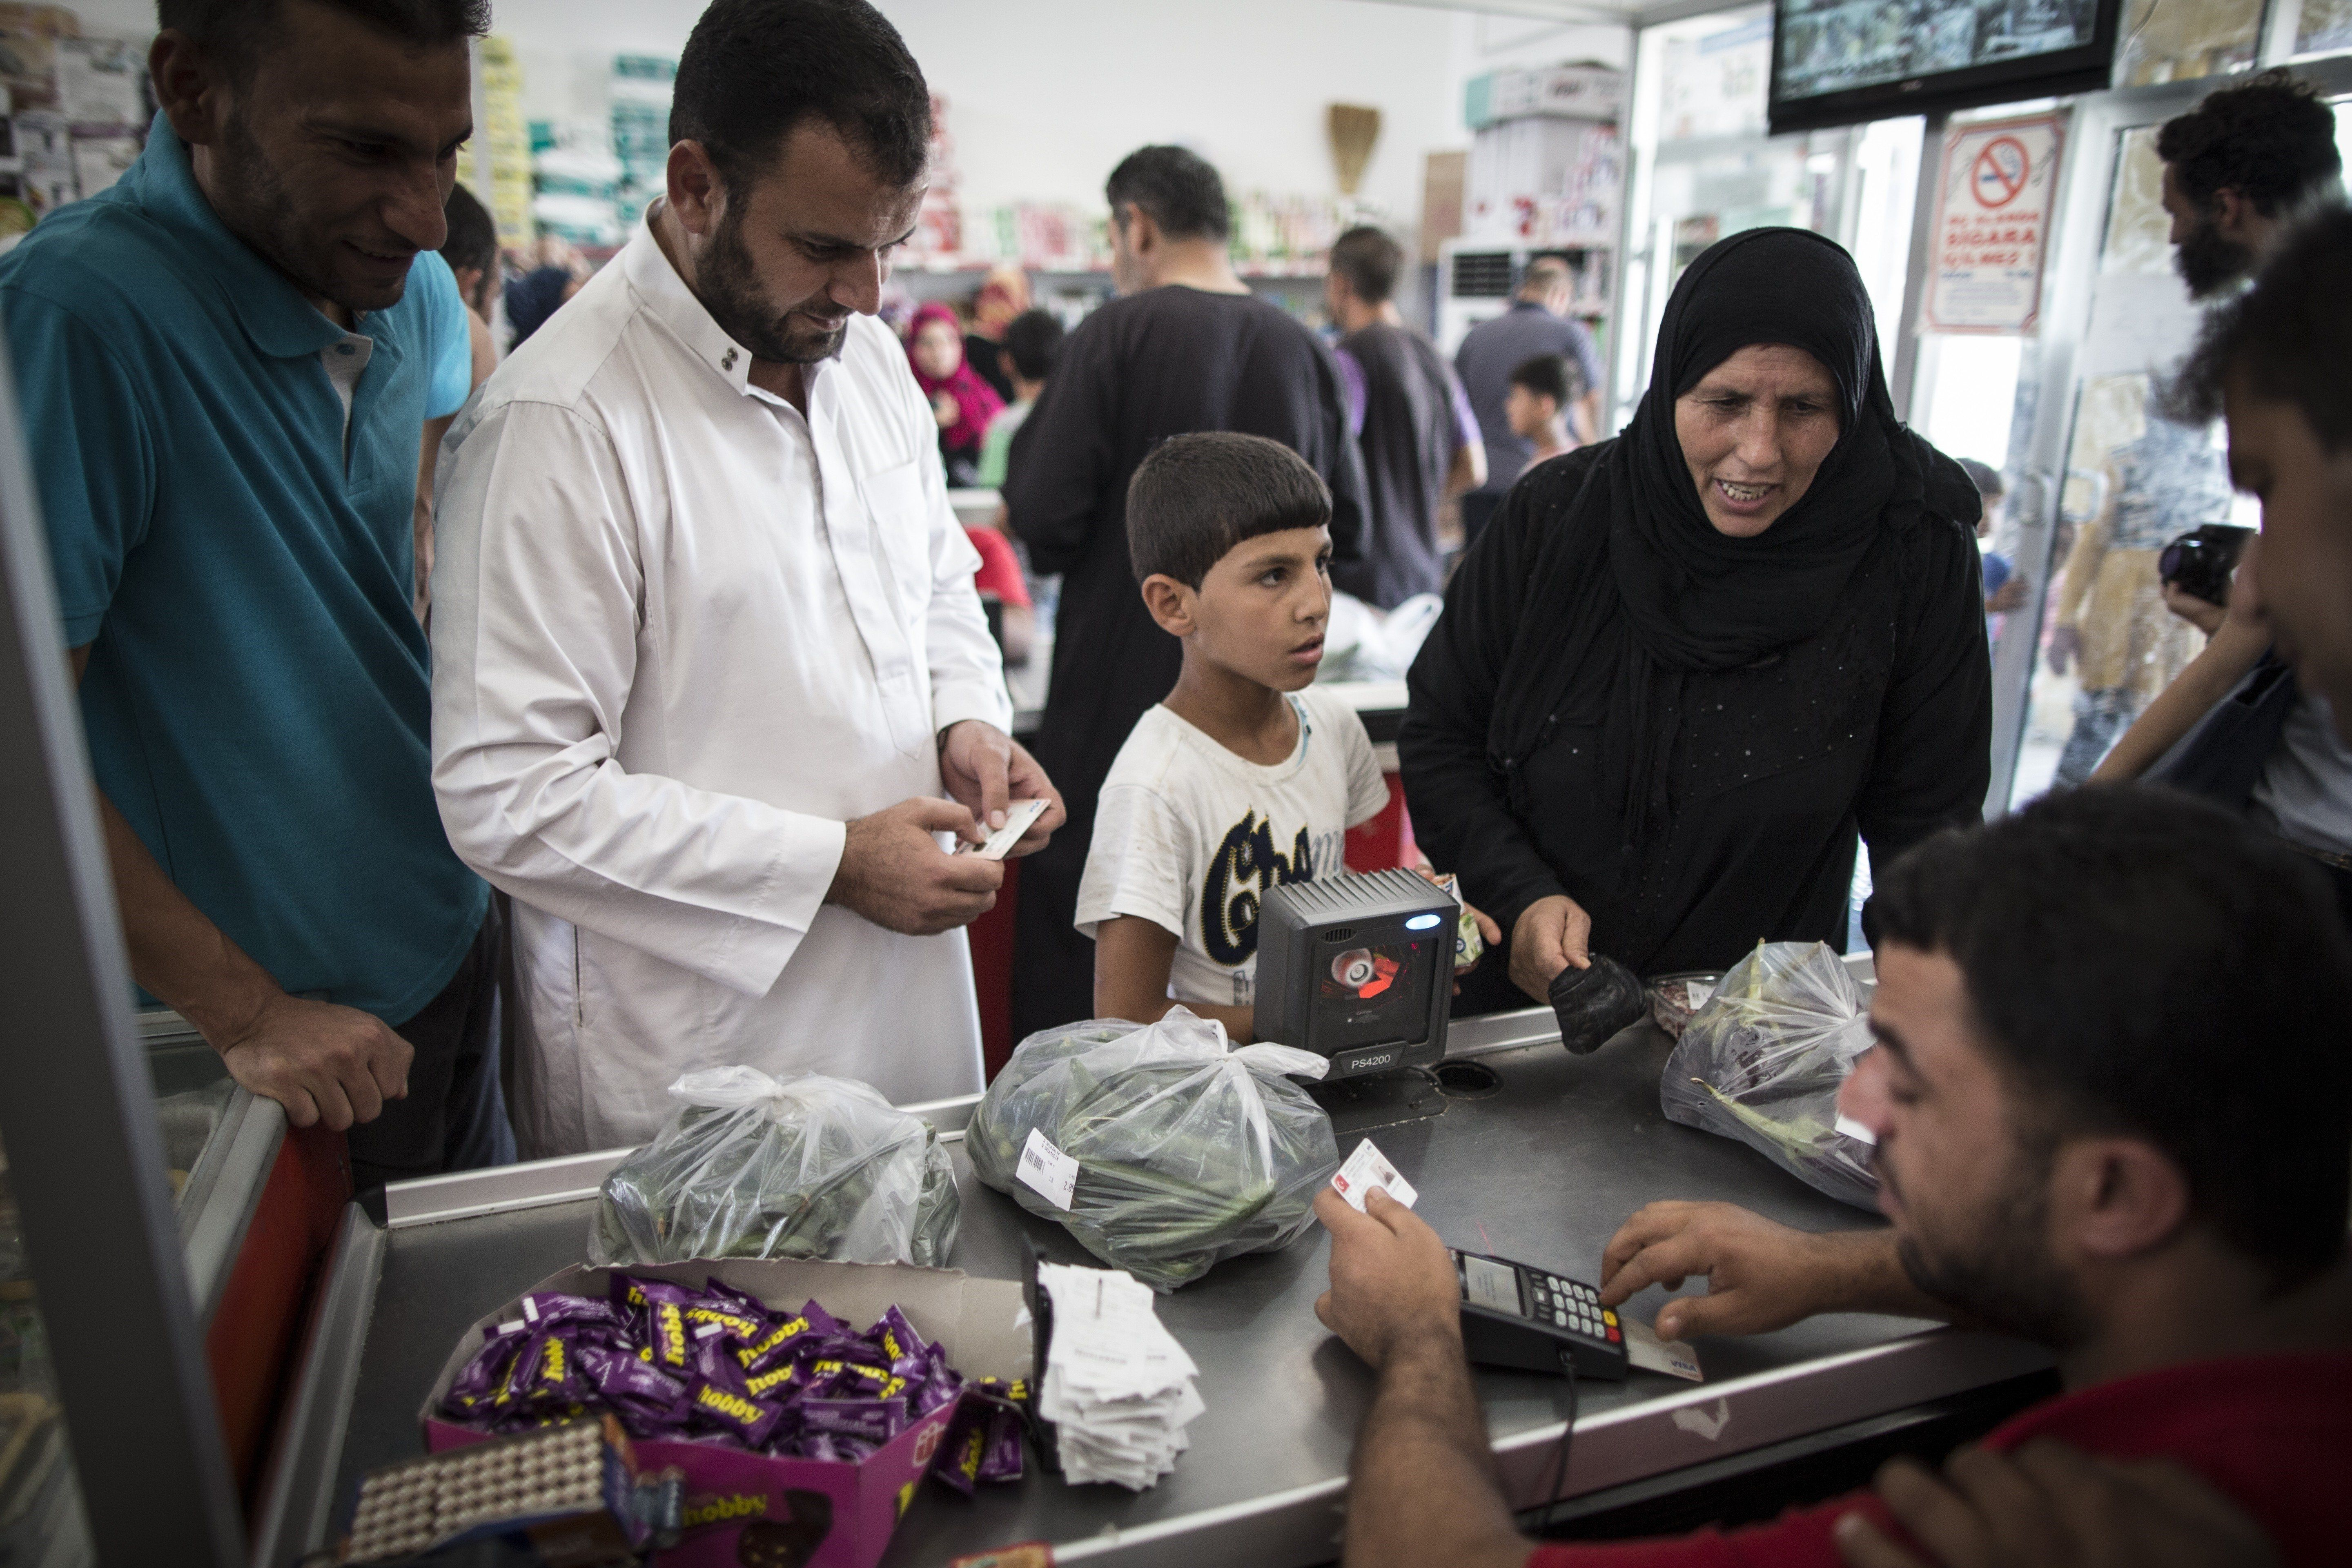 SANLIURFA, TURKEY - SEPTEMBER 24: Refugees shop at a market with their bank card given by the Turkish Red Crescent at a tent city in the Akcakale District of Sanliurfa, Turkey on September 24, 2015. Turkish Red Crescent provided bank cards for the refugees and gives 85 Turkish Liras every month per person. 260 thousand Syrians who have escaped war and found asylum in Turkey are now living in camps with opportunities that mean they don't miss what they've left behind. (Photo by Aykut Unlupinar/Anadolu Agency/Getty Images)